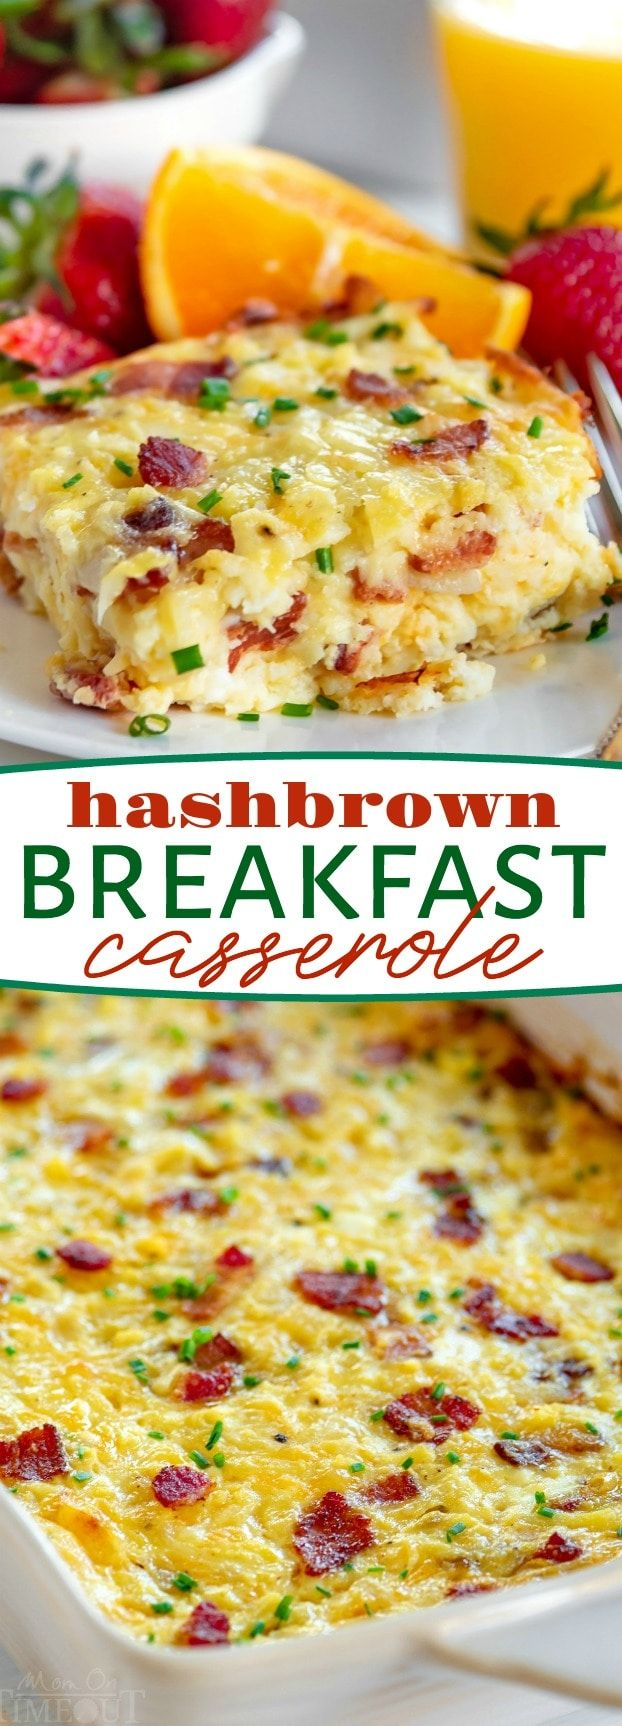 Easy Hashbrown Breakfast Casserole is perfect for entertaining a crowd or serving up a simple weeke